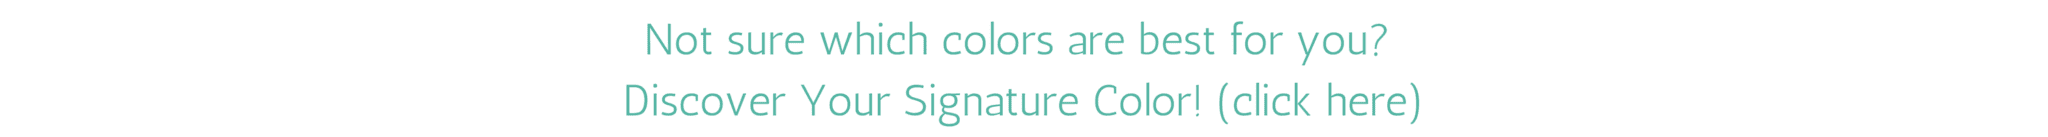 Not sure which colors are best for you_ Discover Your Signature Color!